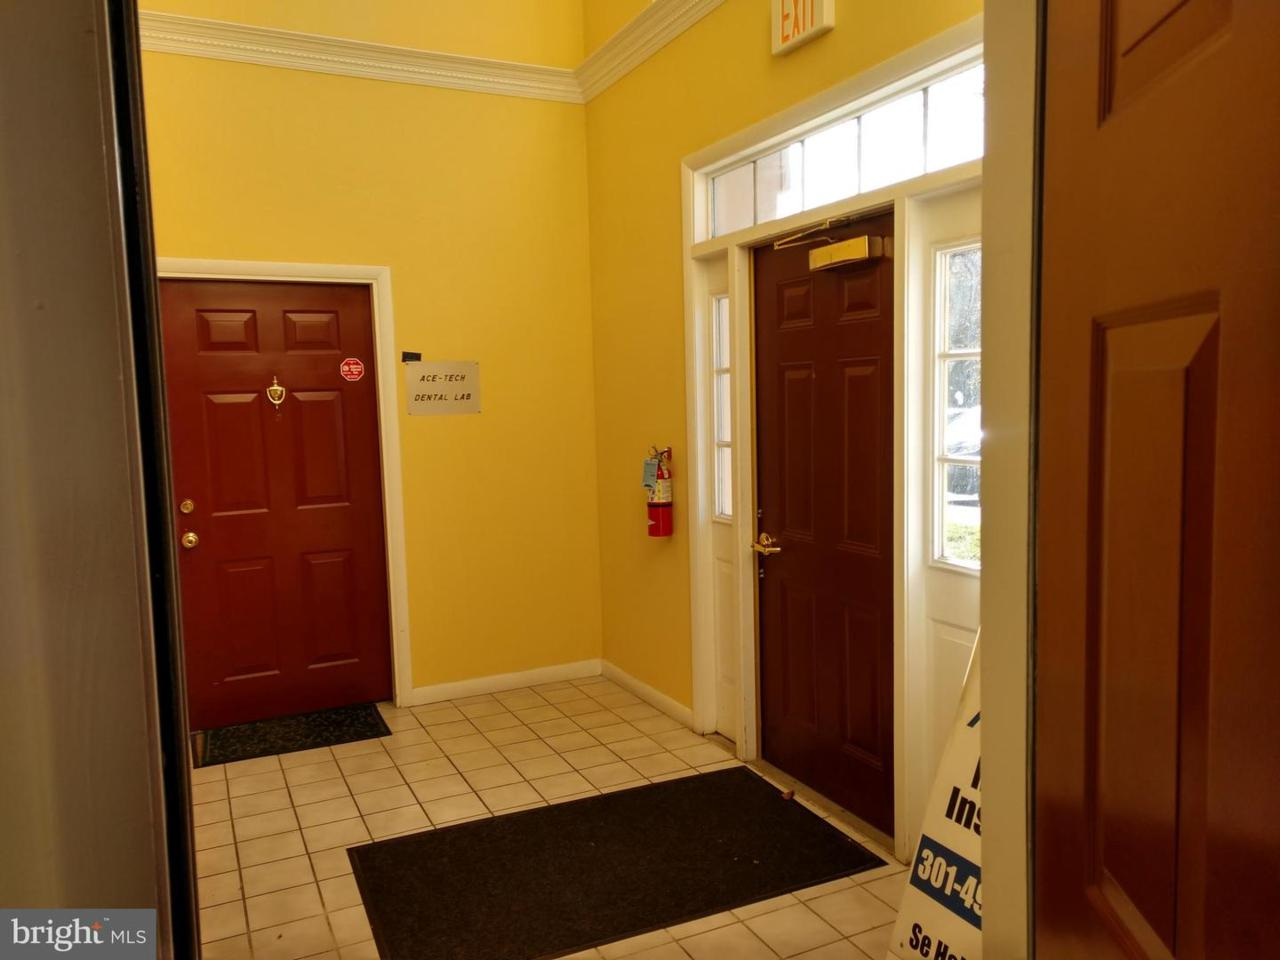 https://bt-photos.global.ssl.fastly.net/brightmls/1280_boomver_1_301046237280-2.jpg